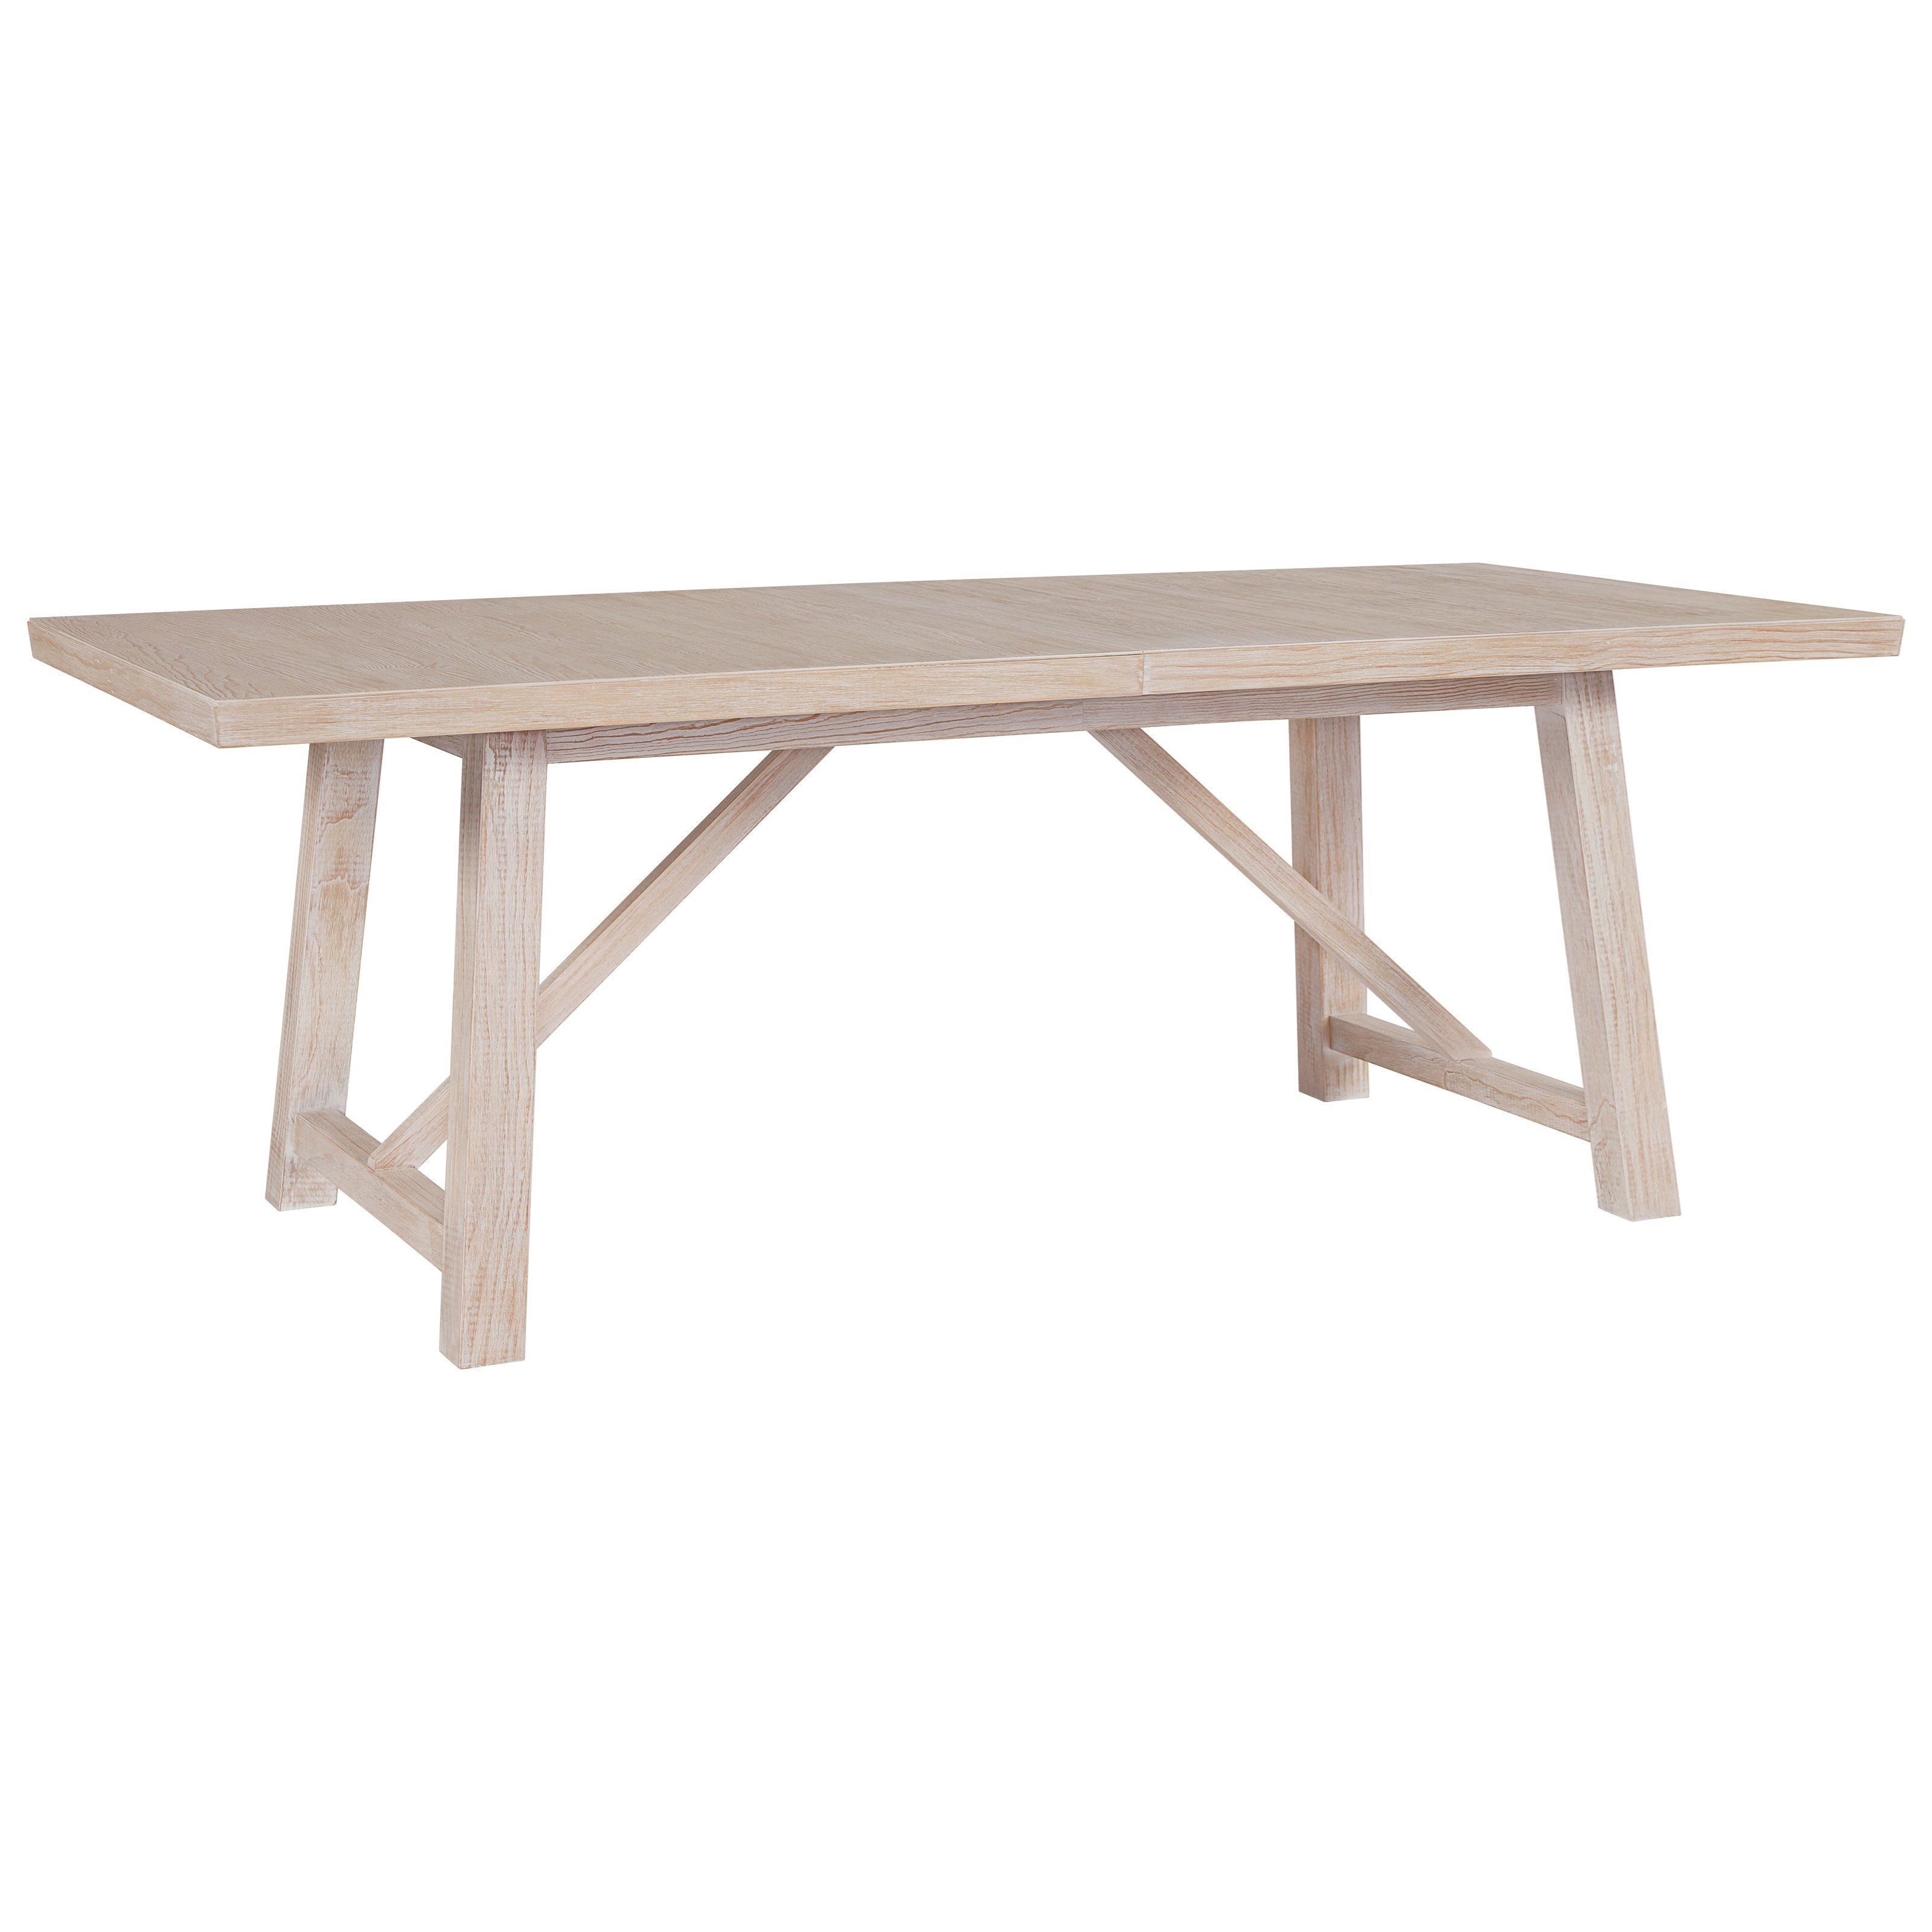 Coastal Living Home - Getaway Dining Table by Universal at Zak's Home